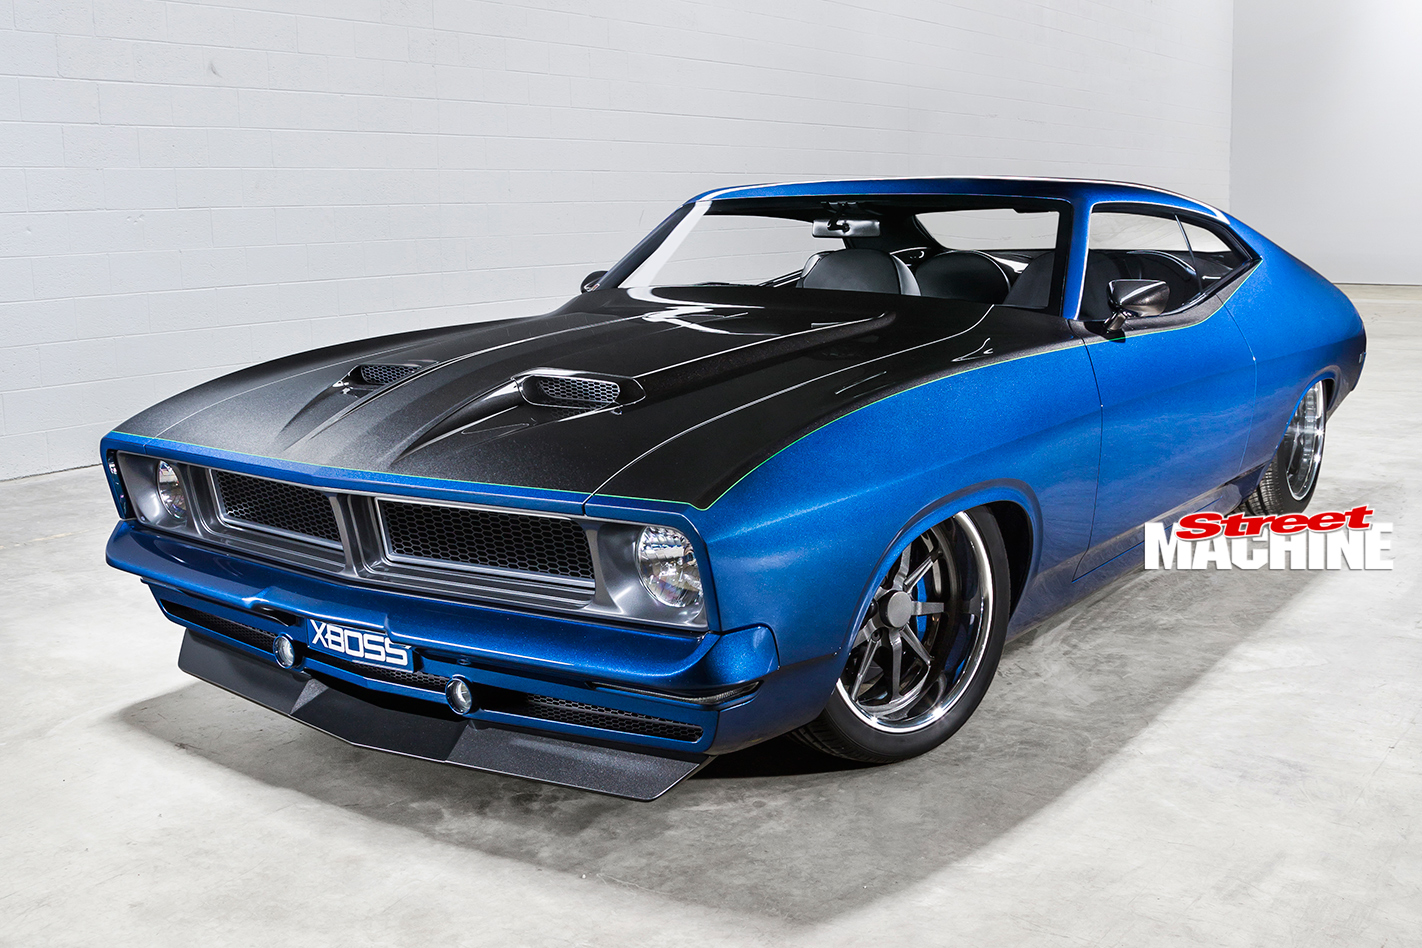 Chris Bitmead S Stunning 1976 Ford Falcon Xb Coupe Xboss